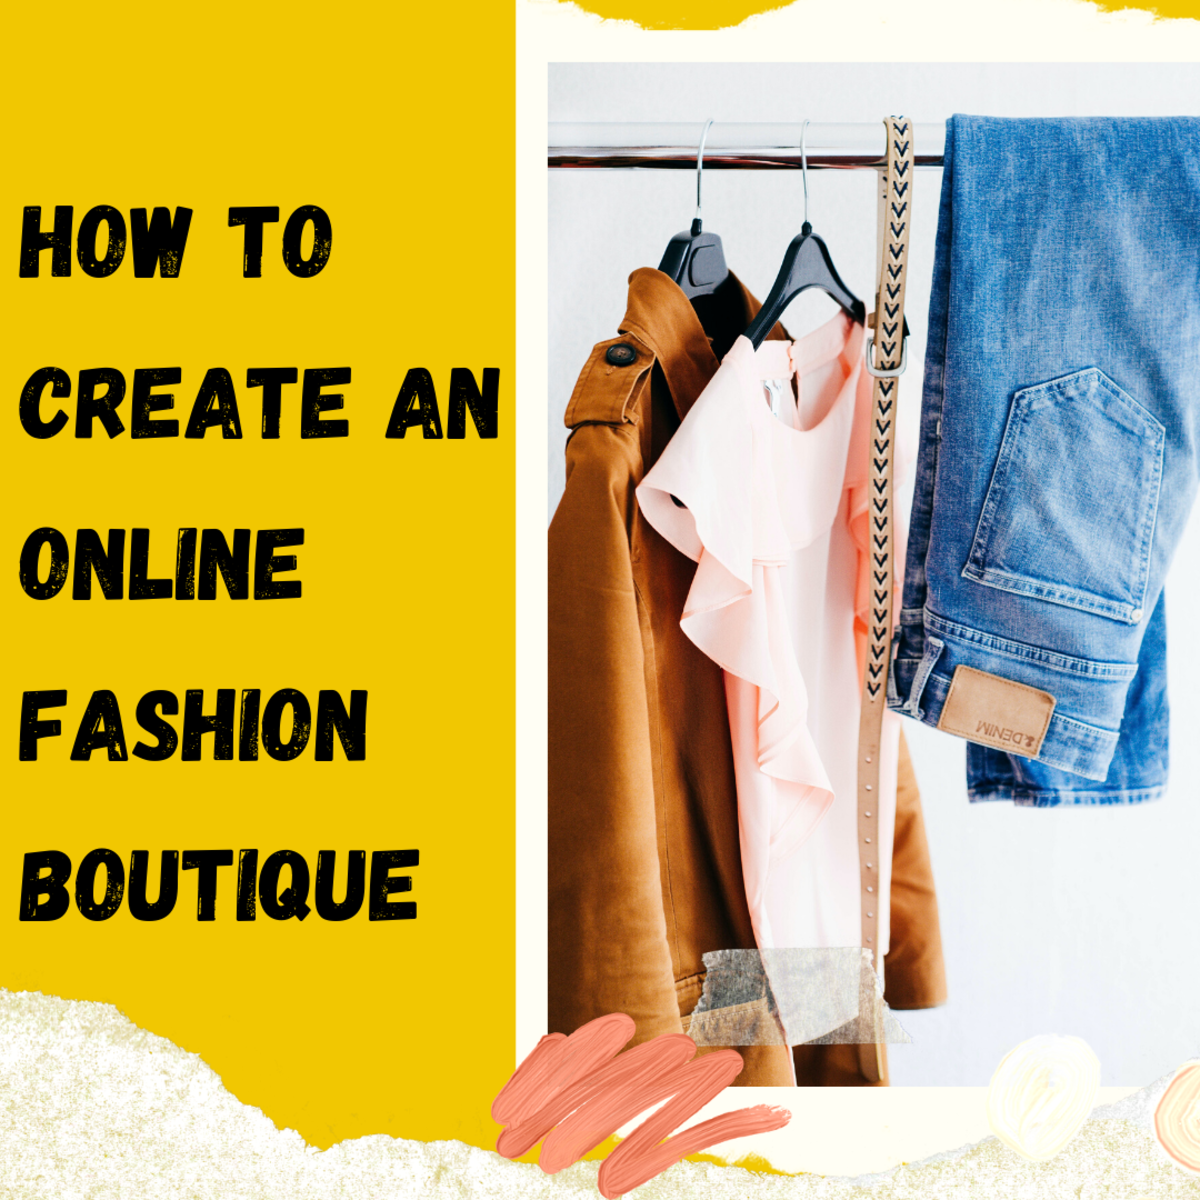 How to Create an Online Fashion Boutique With Very Little Money